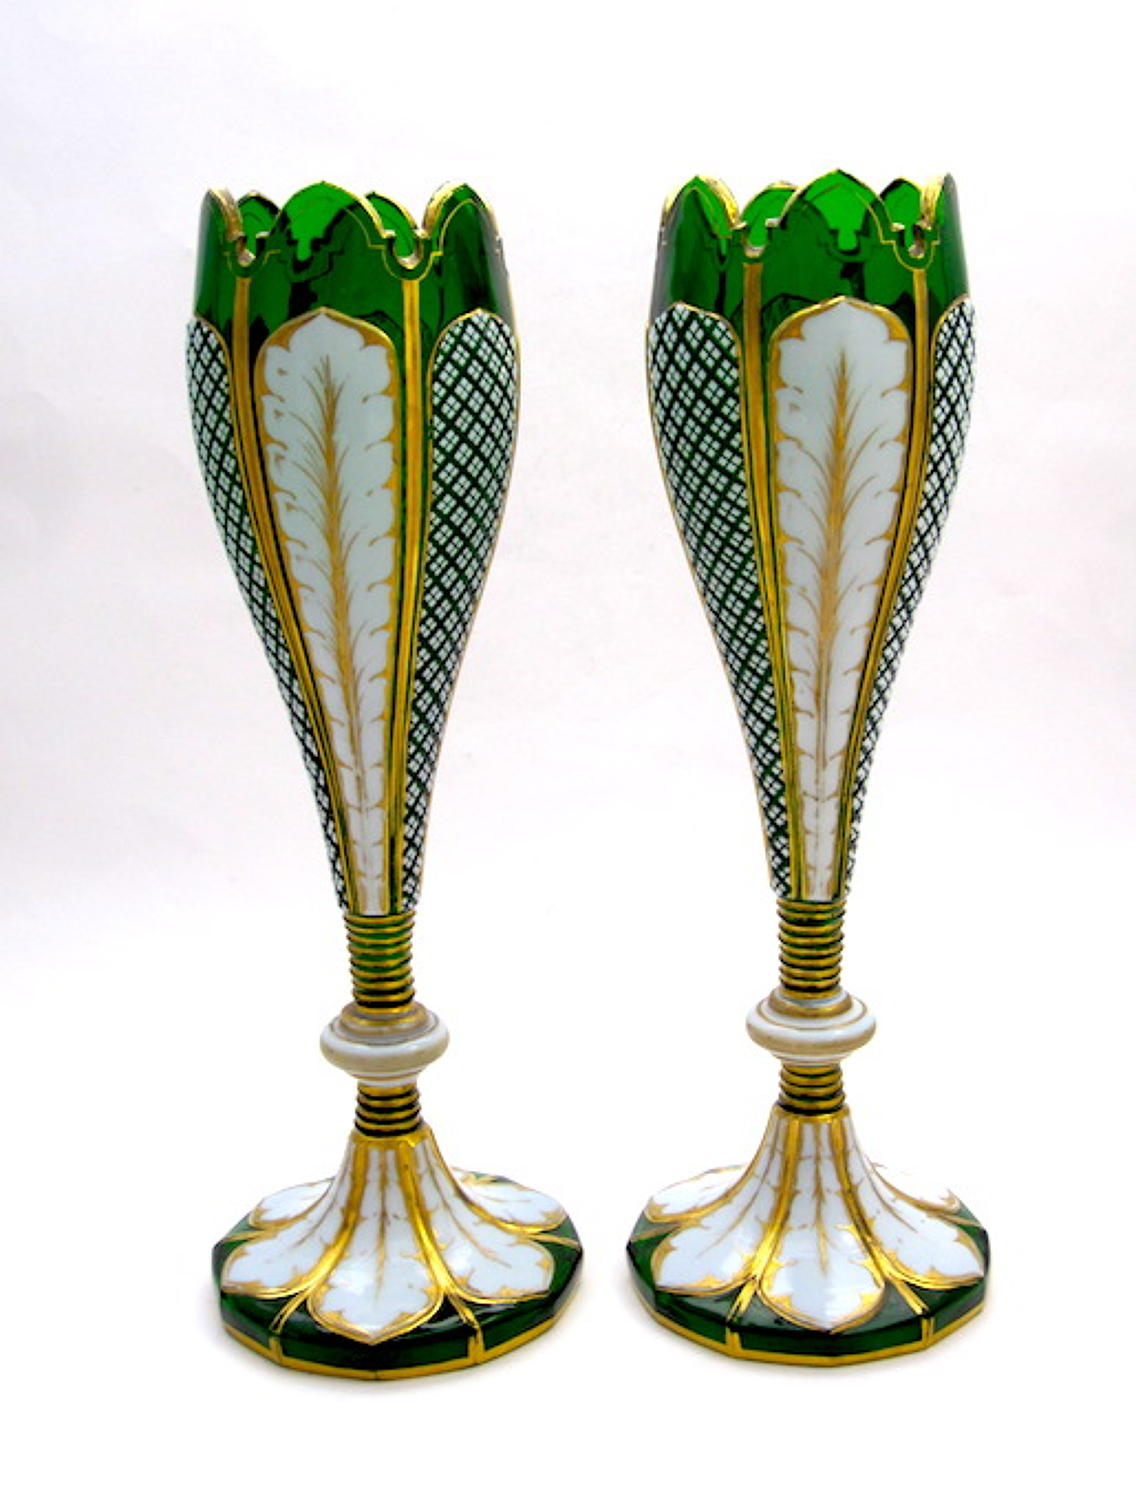 Pair of Antique Bohemian Green Overlay Glass Vases